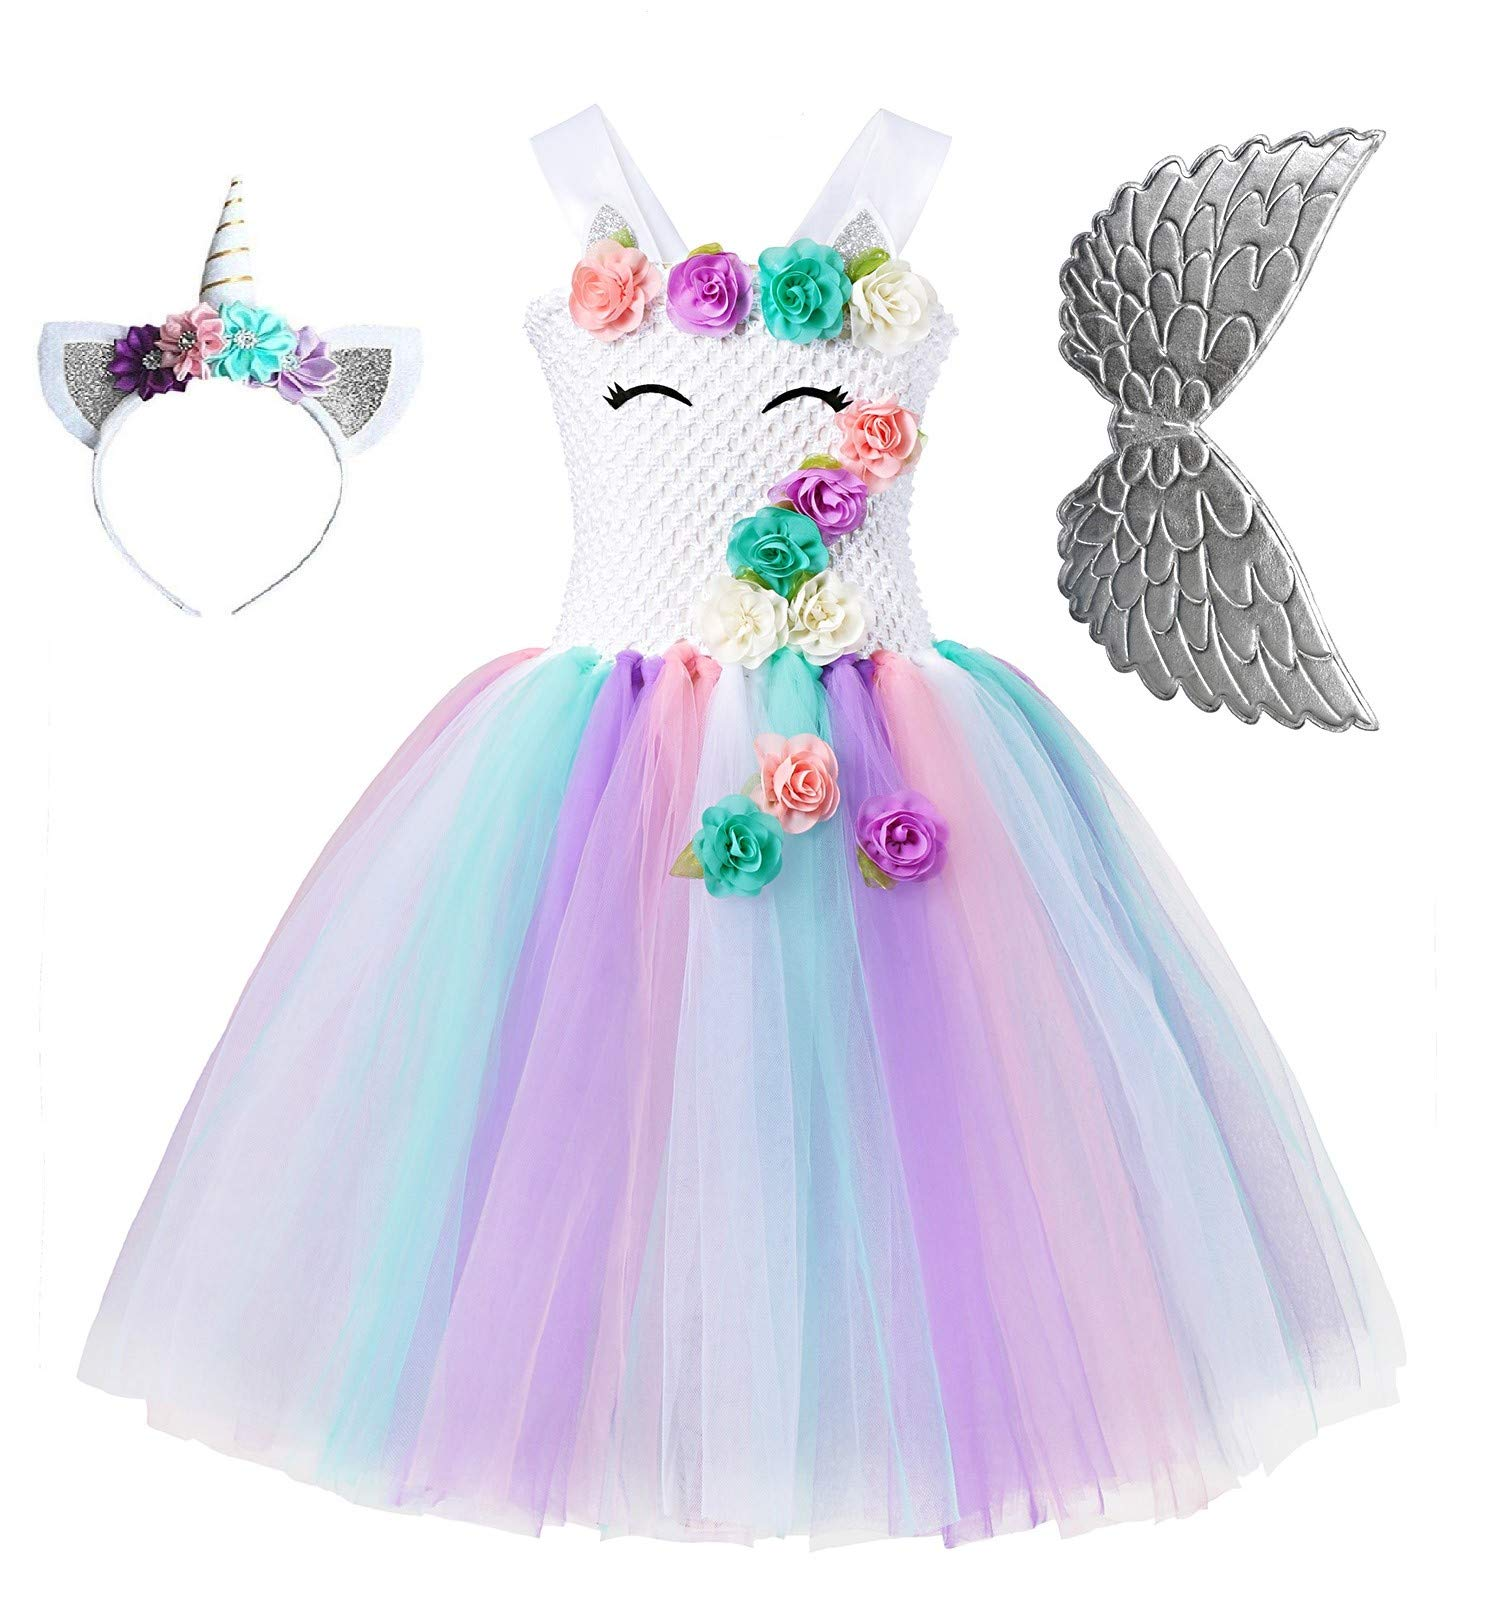 Unicorn Tutu Party Dress for Girls - Flower Pageant Princess Costume with Headband and Wings (6-7Y)